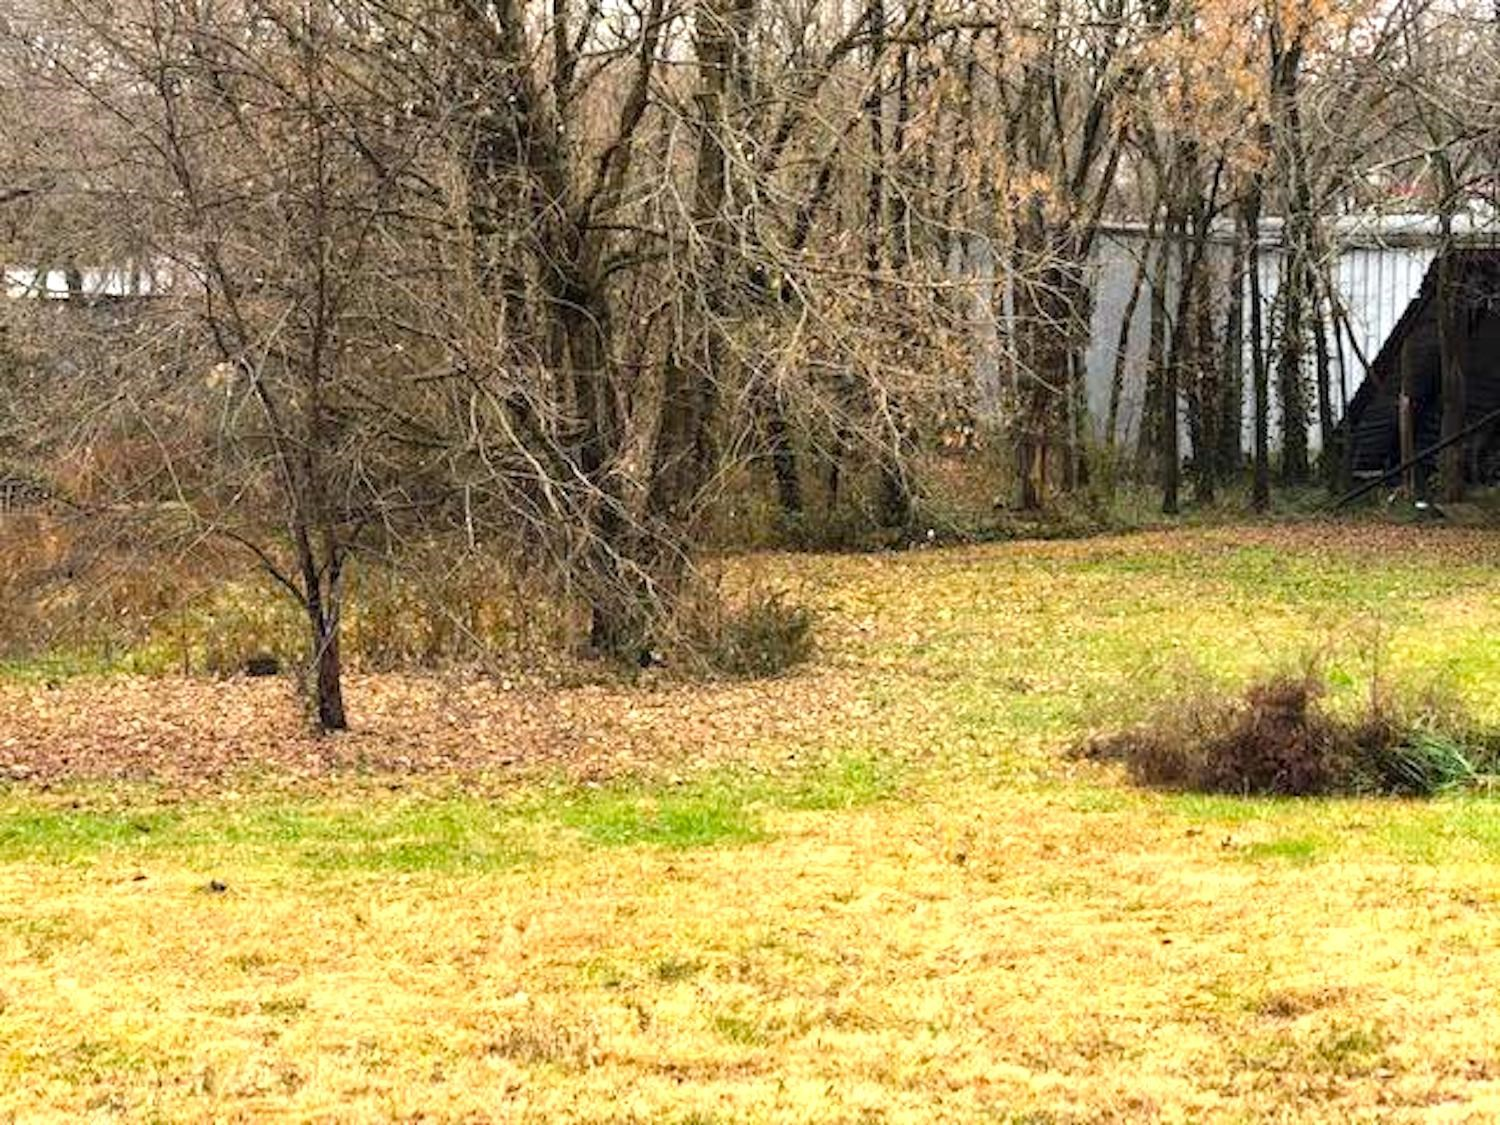 Residential Lot for Sale in Alton, MO